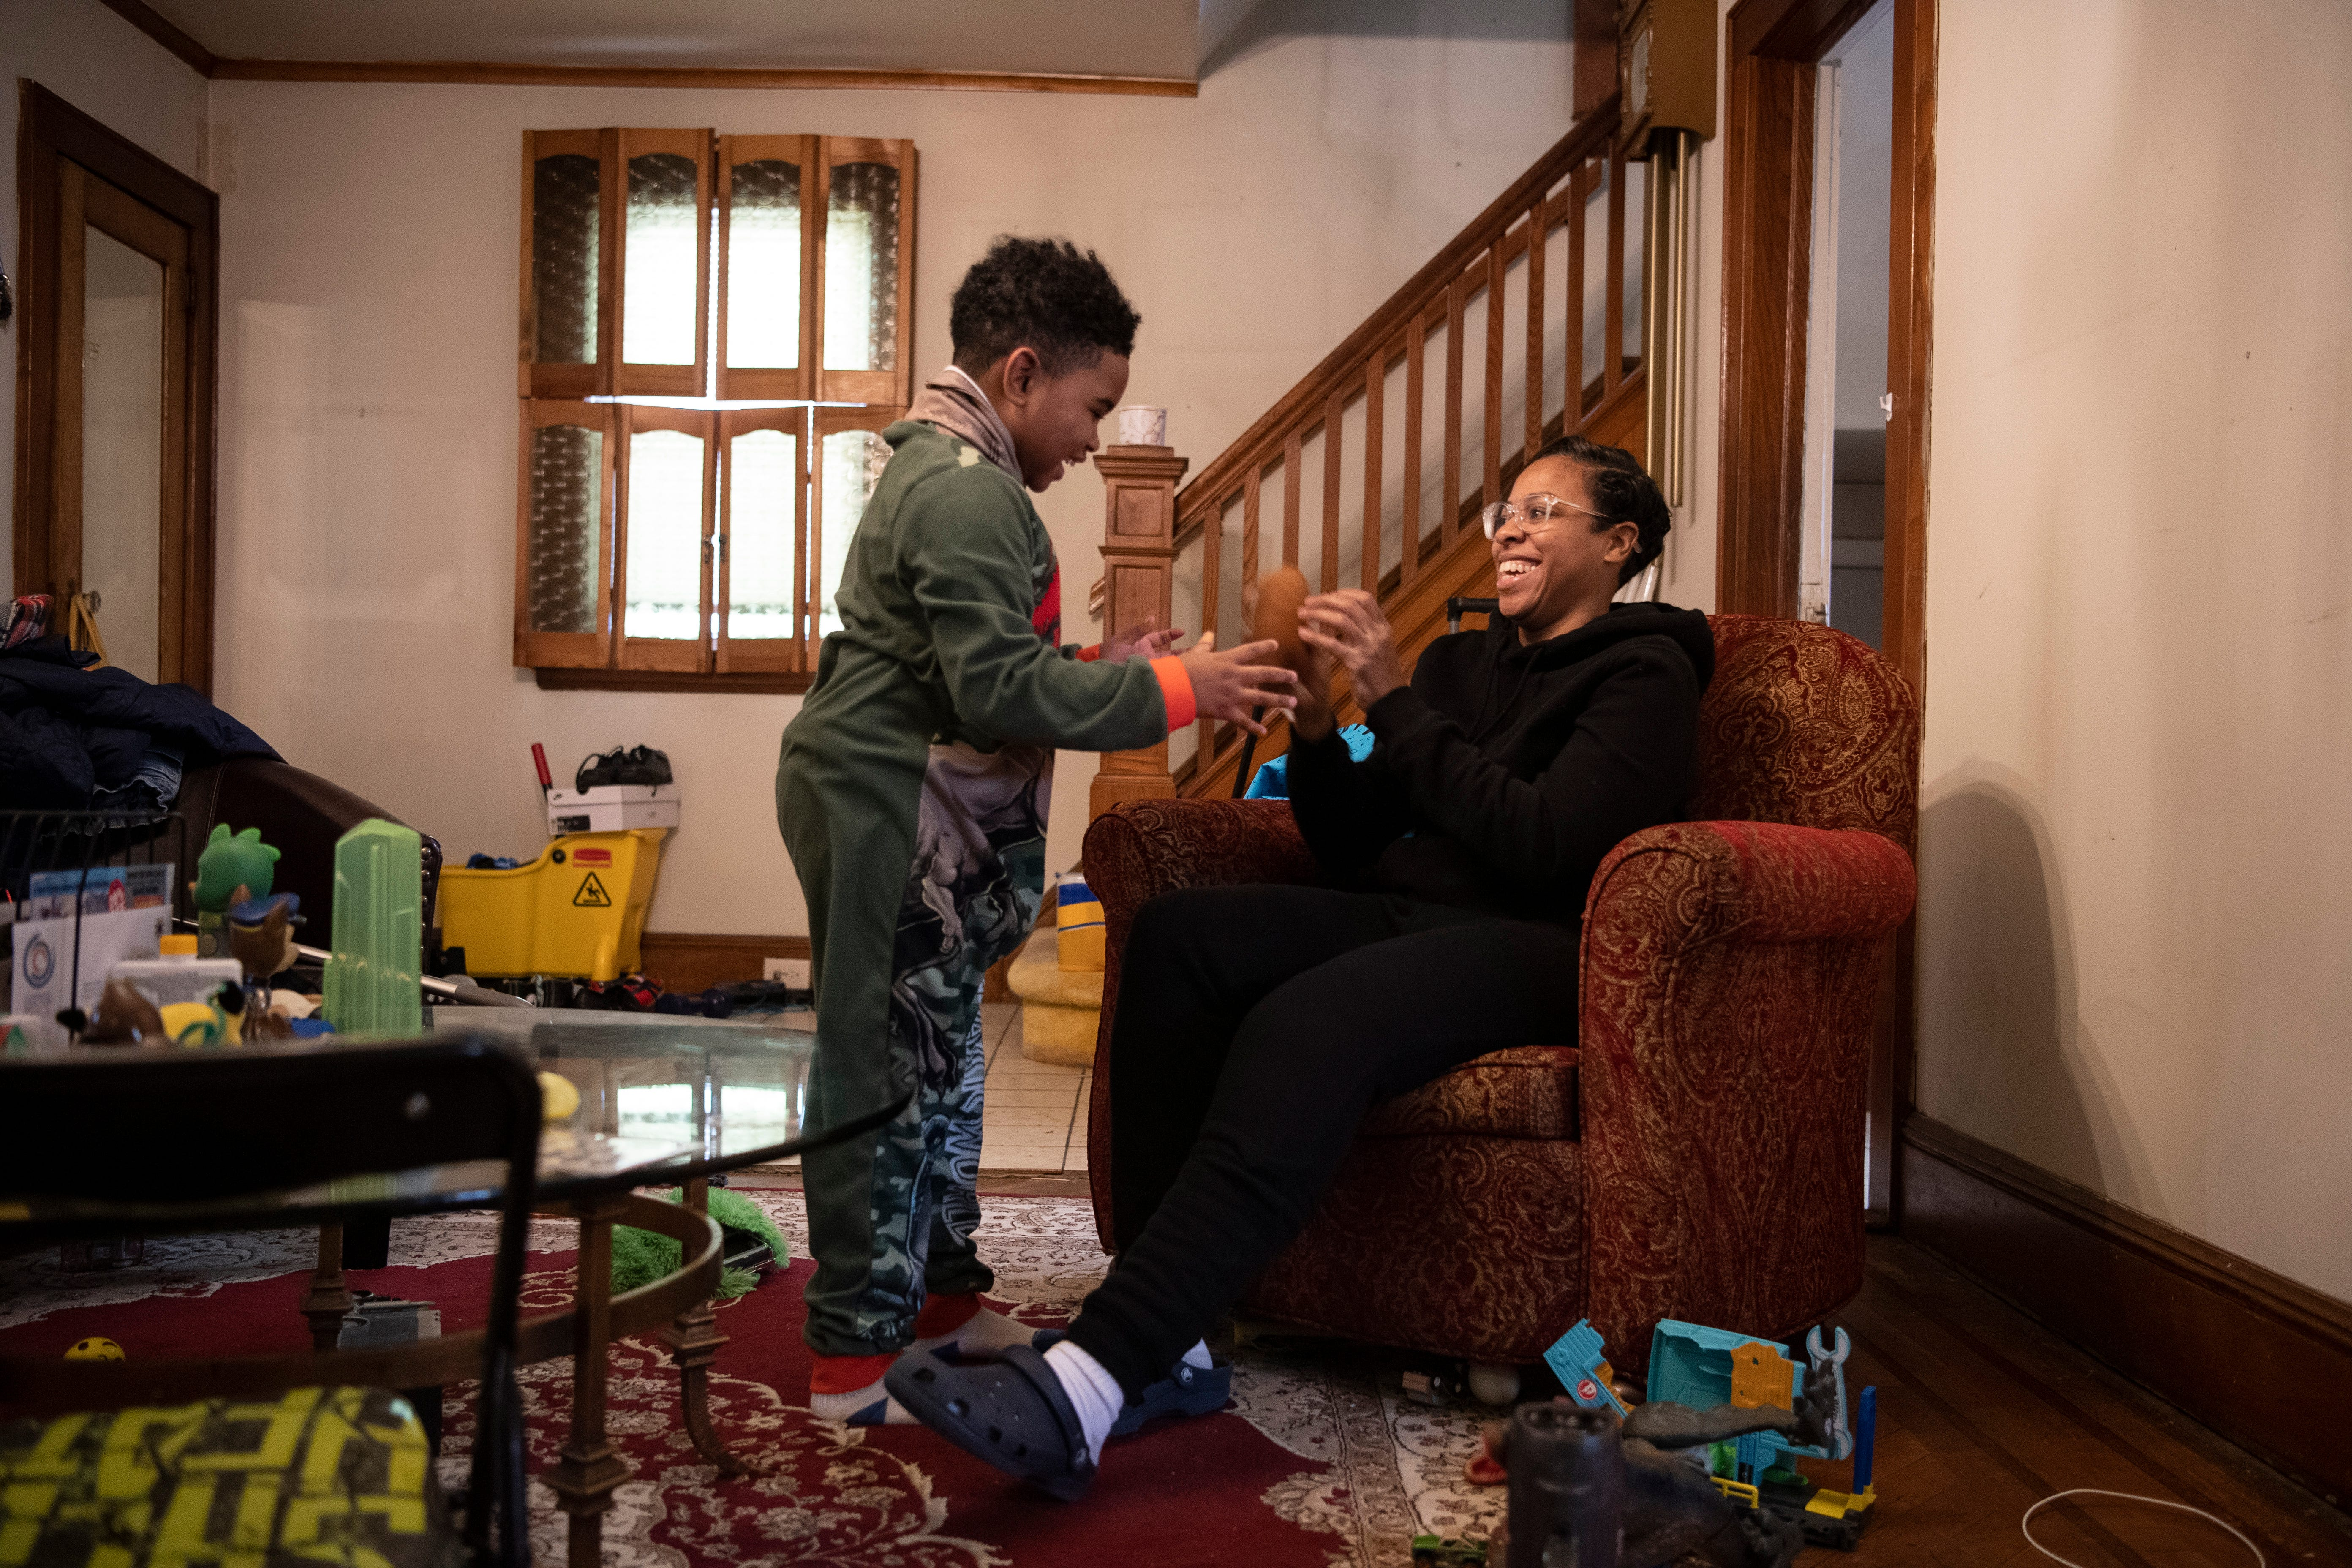 Shakima Thomas, of Newark, became an activist for clean water after learning her son had lead in his blood. Thomas plays with her son Bryce, 6, in their home in Newark on Saturday, February 6, 2021